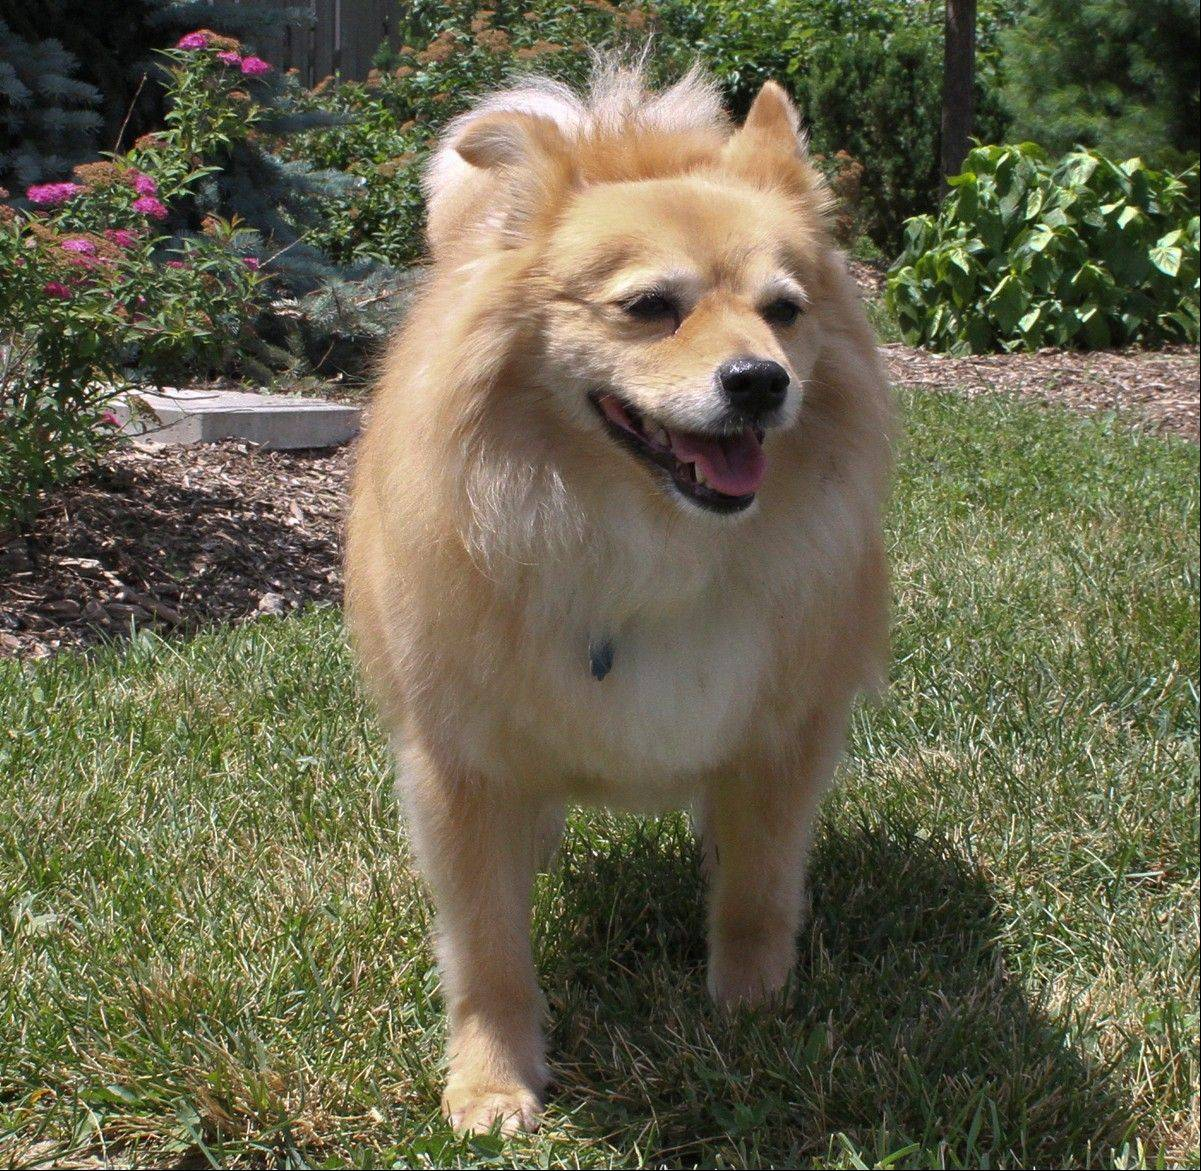 Meet Kashi, a 30-pound, female Spitz, who is about 8 years old.